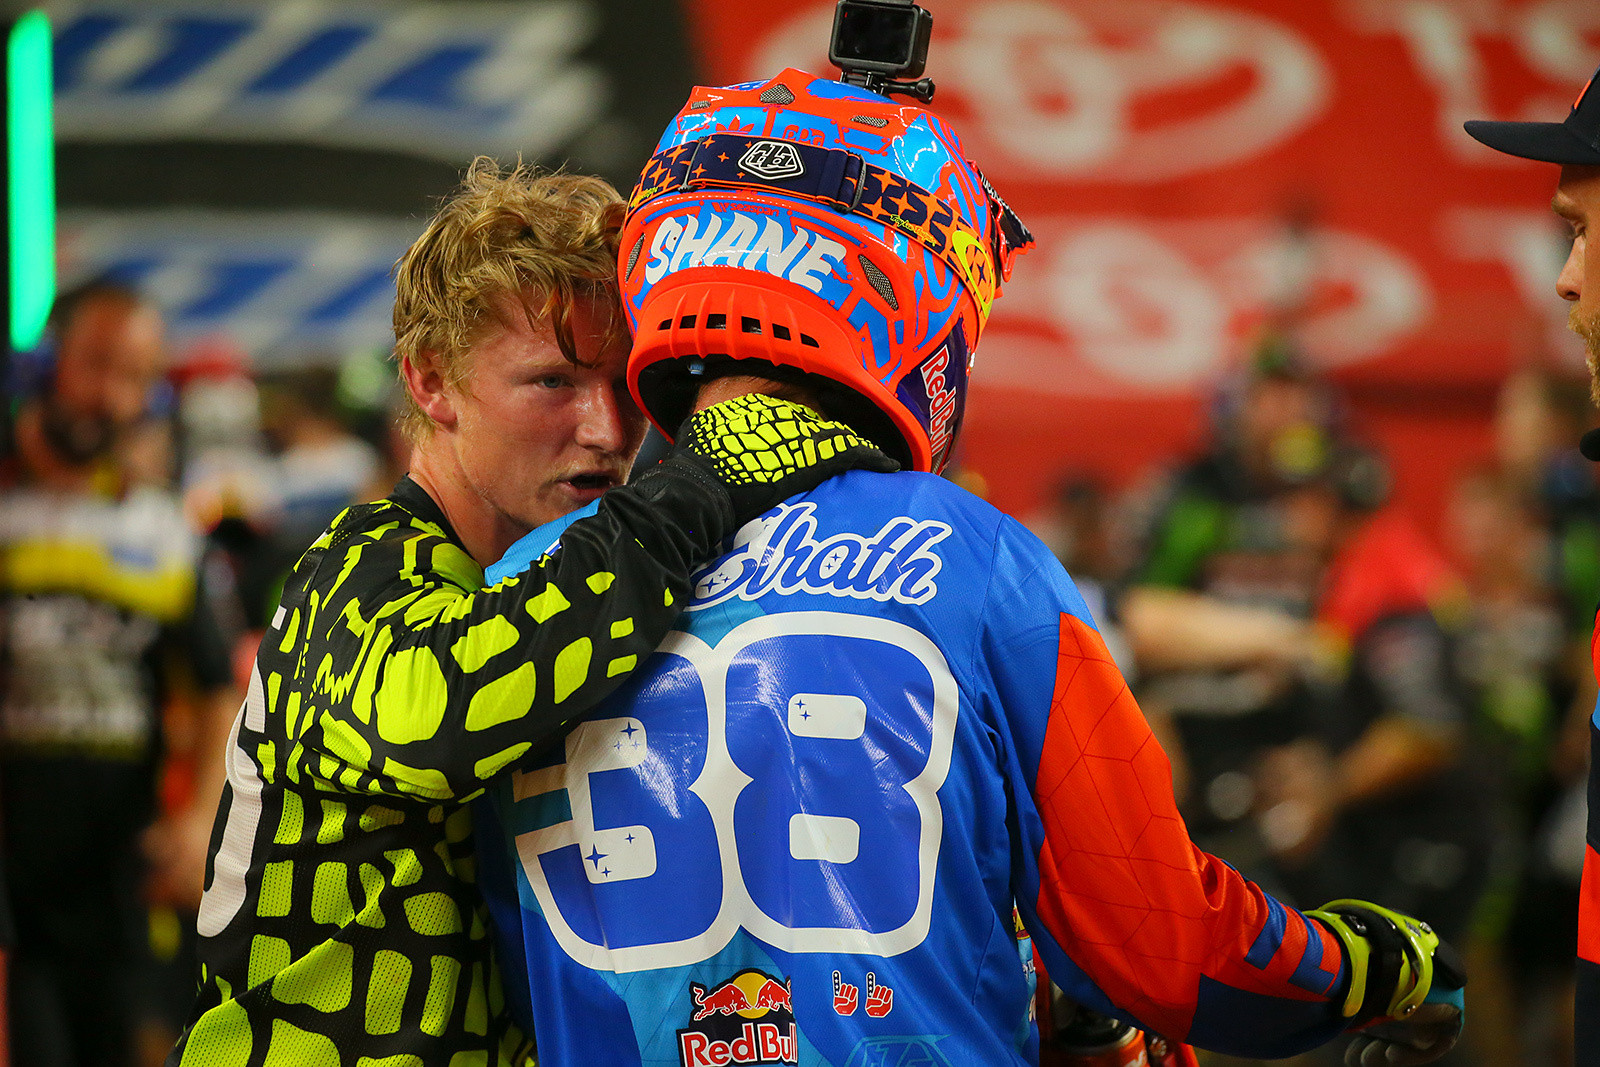 Justin Hill and Shane McElrath - Photo Blast: Arlington - Motocross Pictures - Vital MX